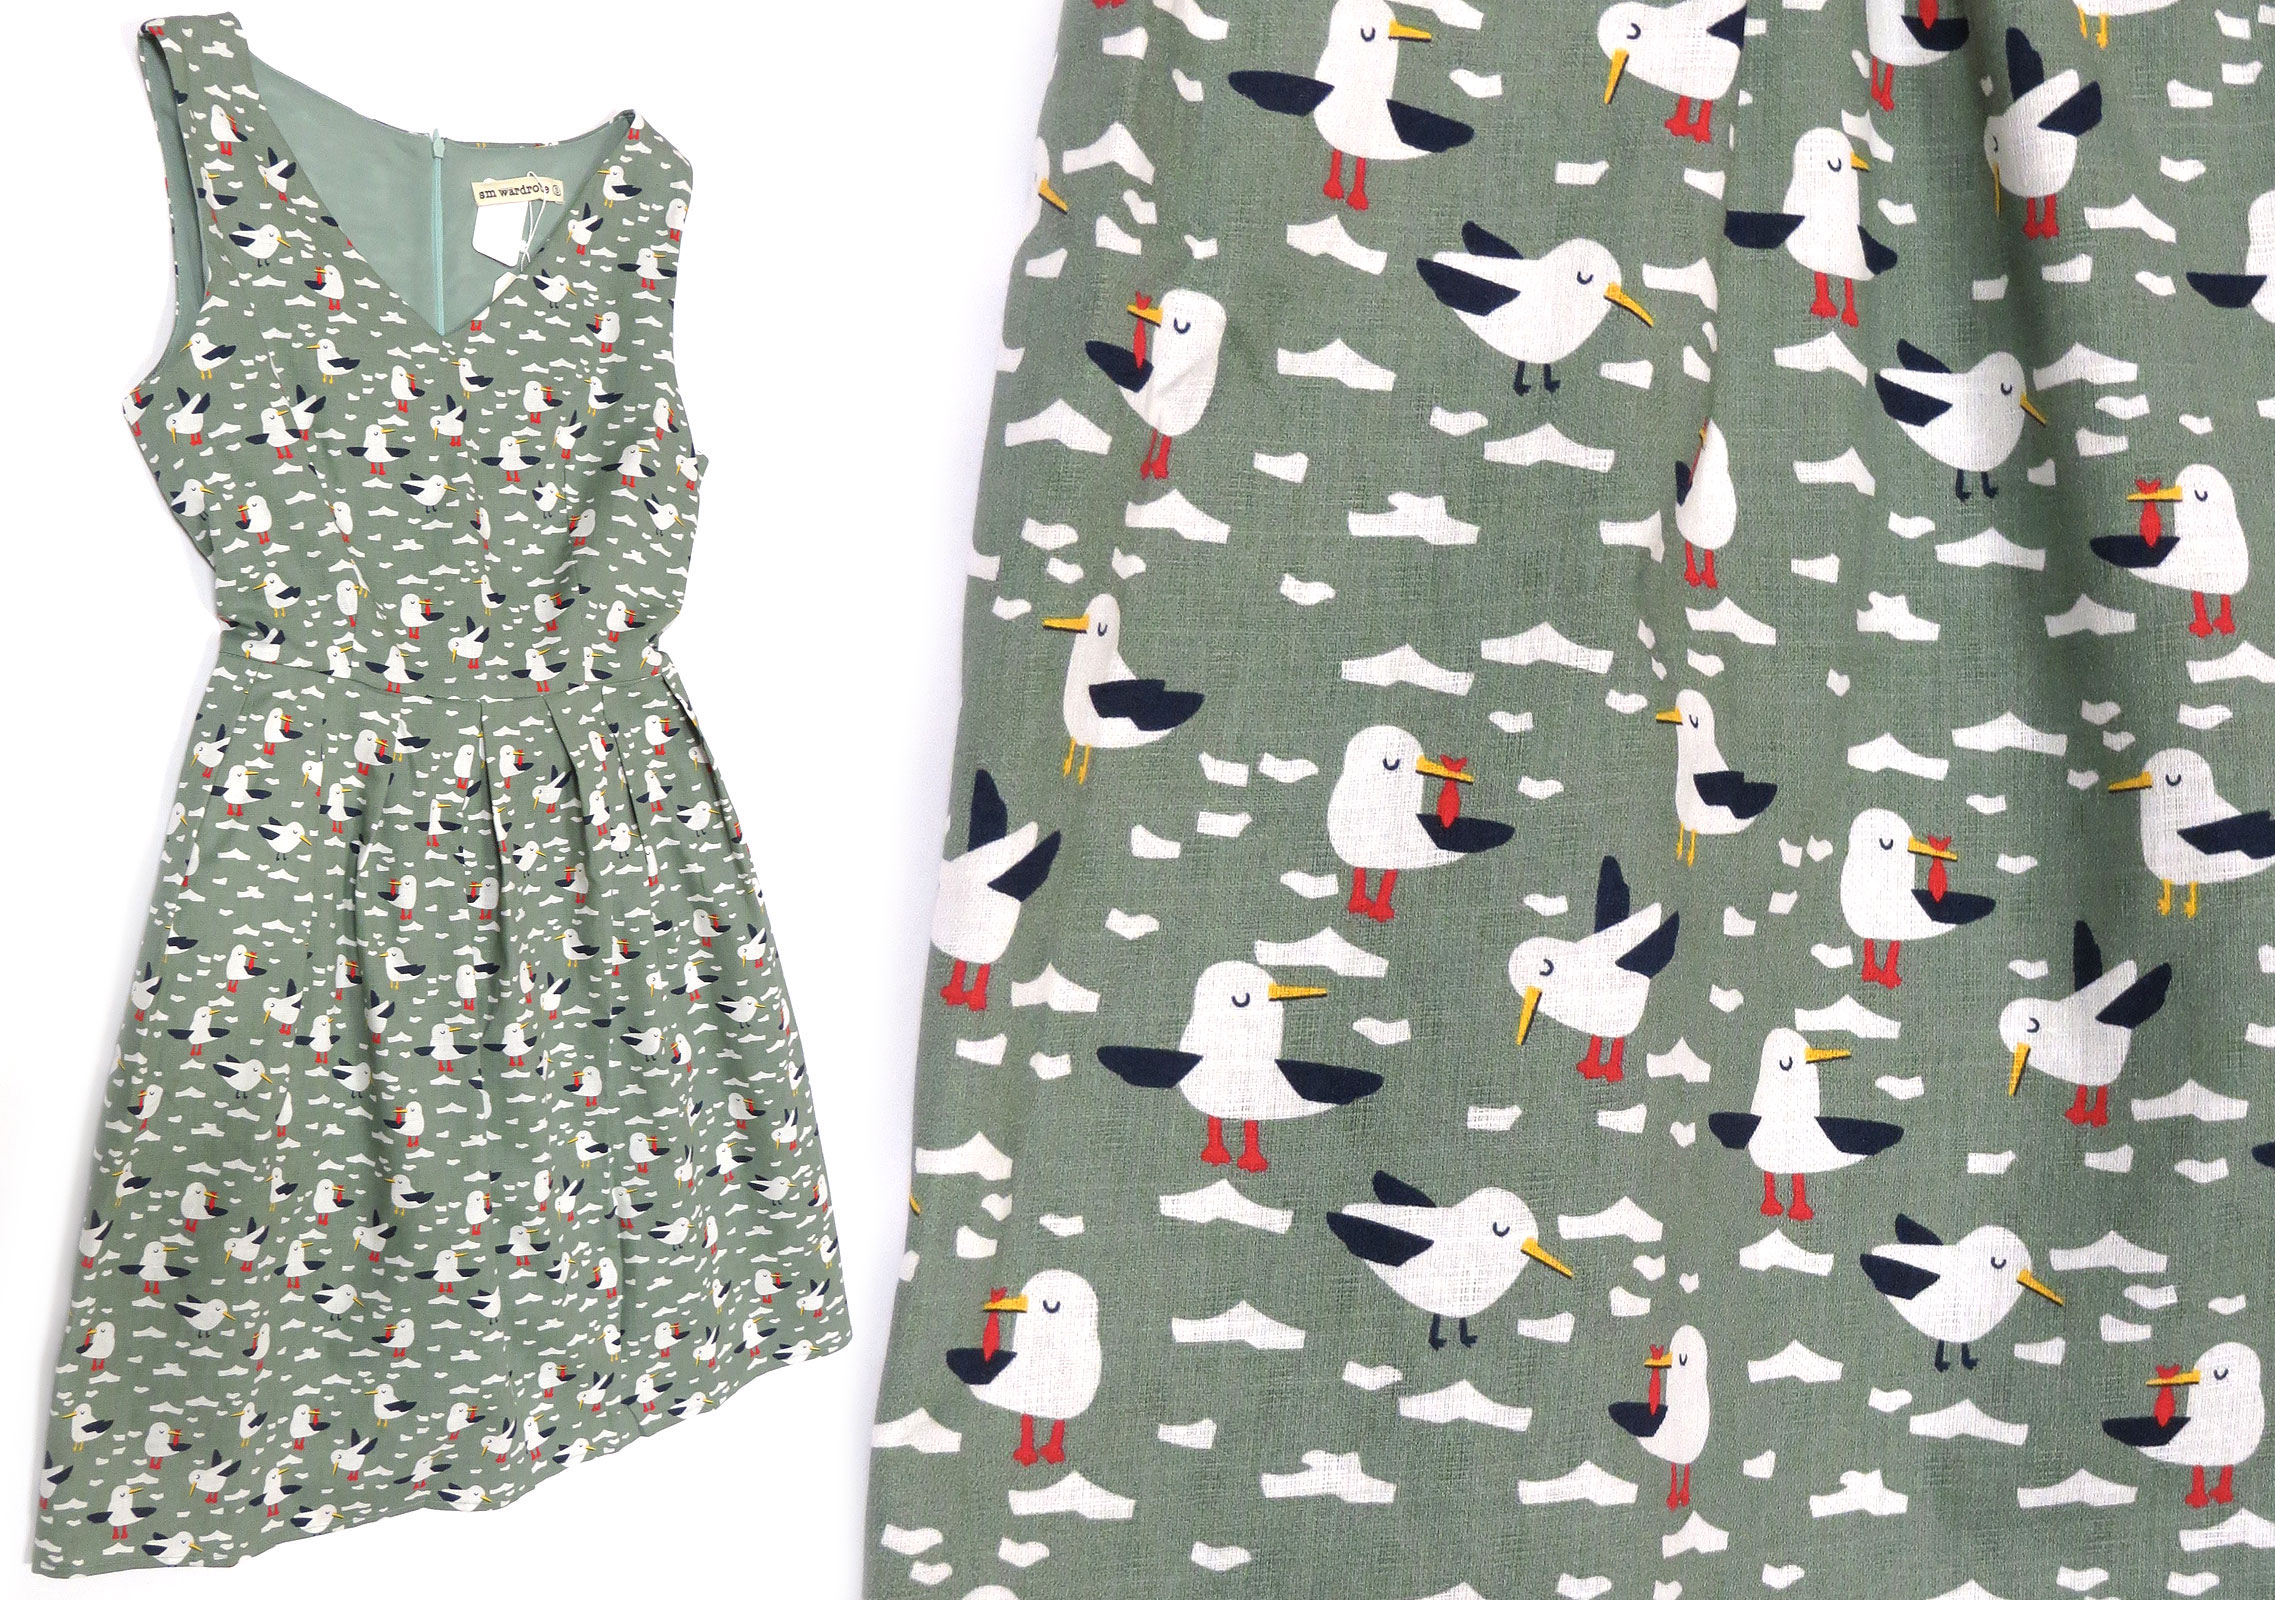 Seagull Dress